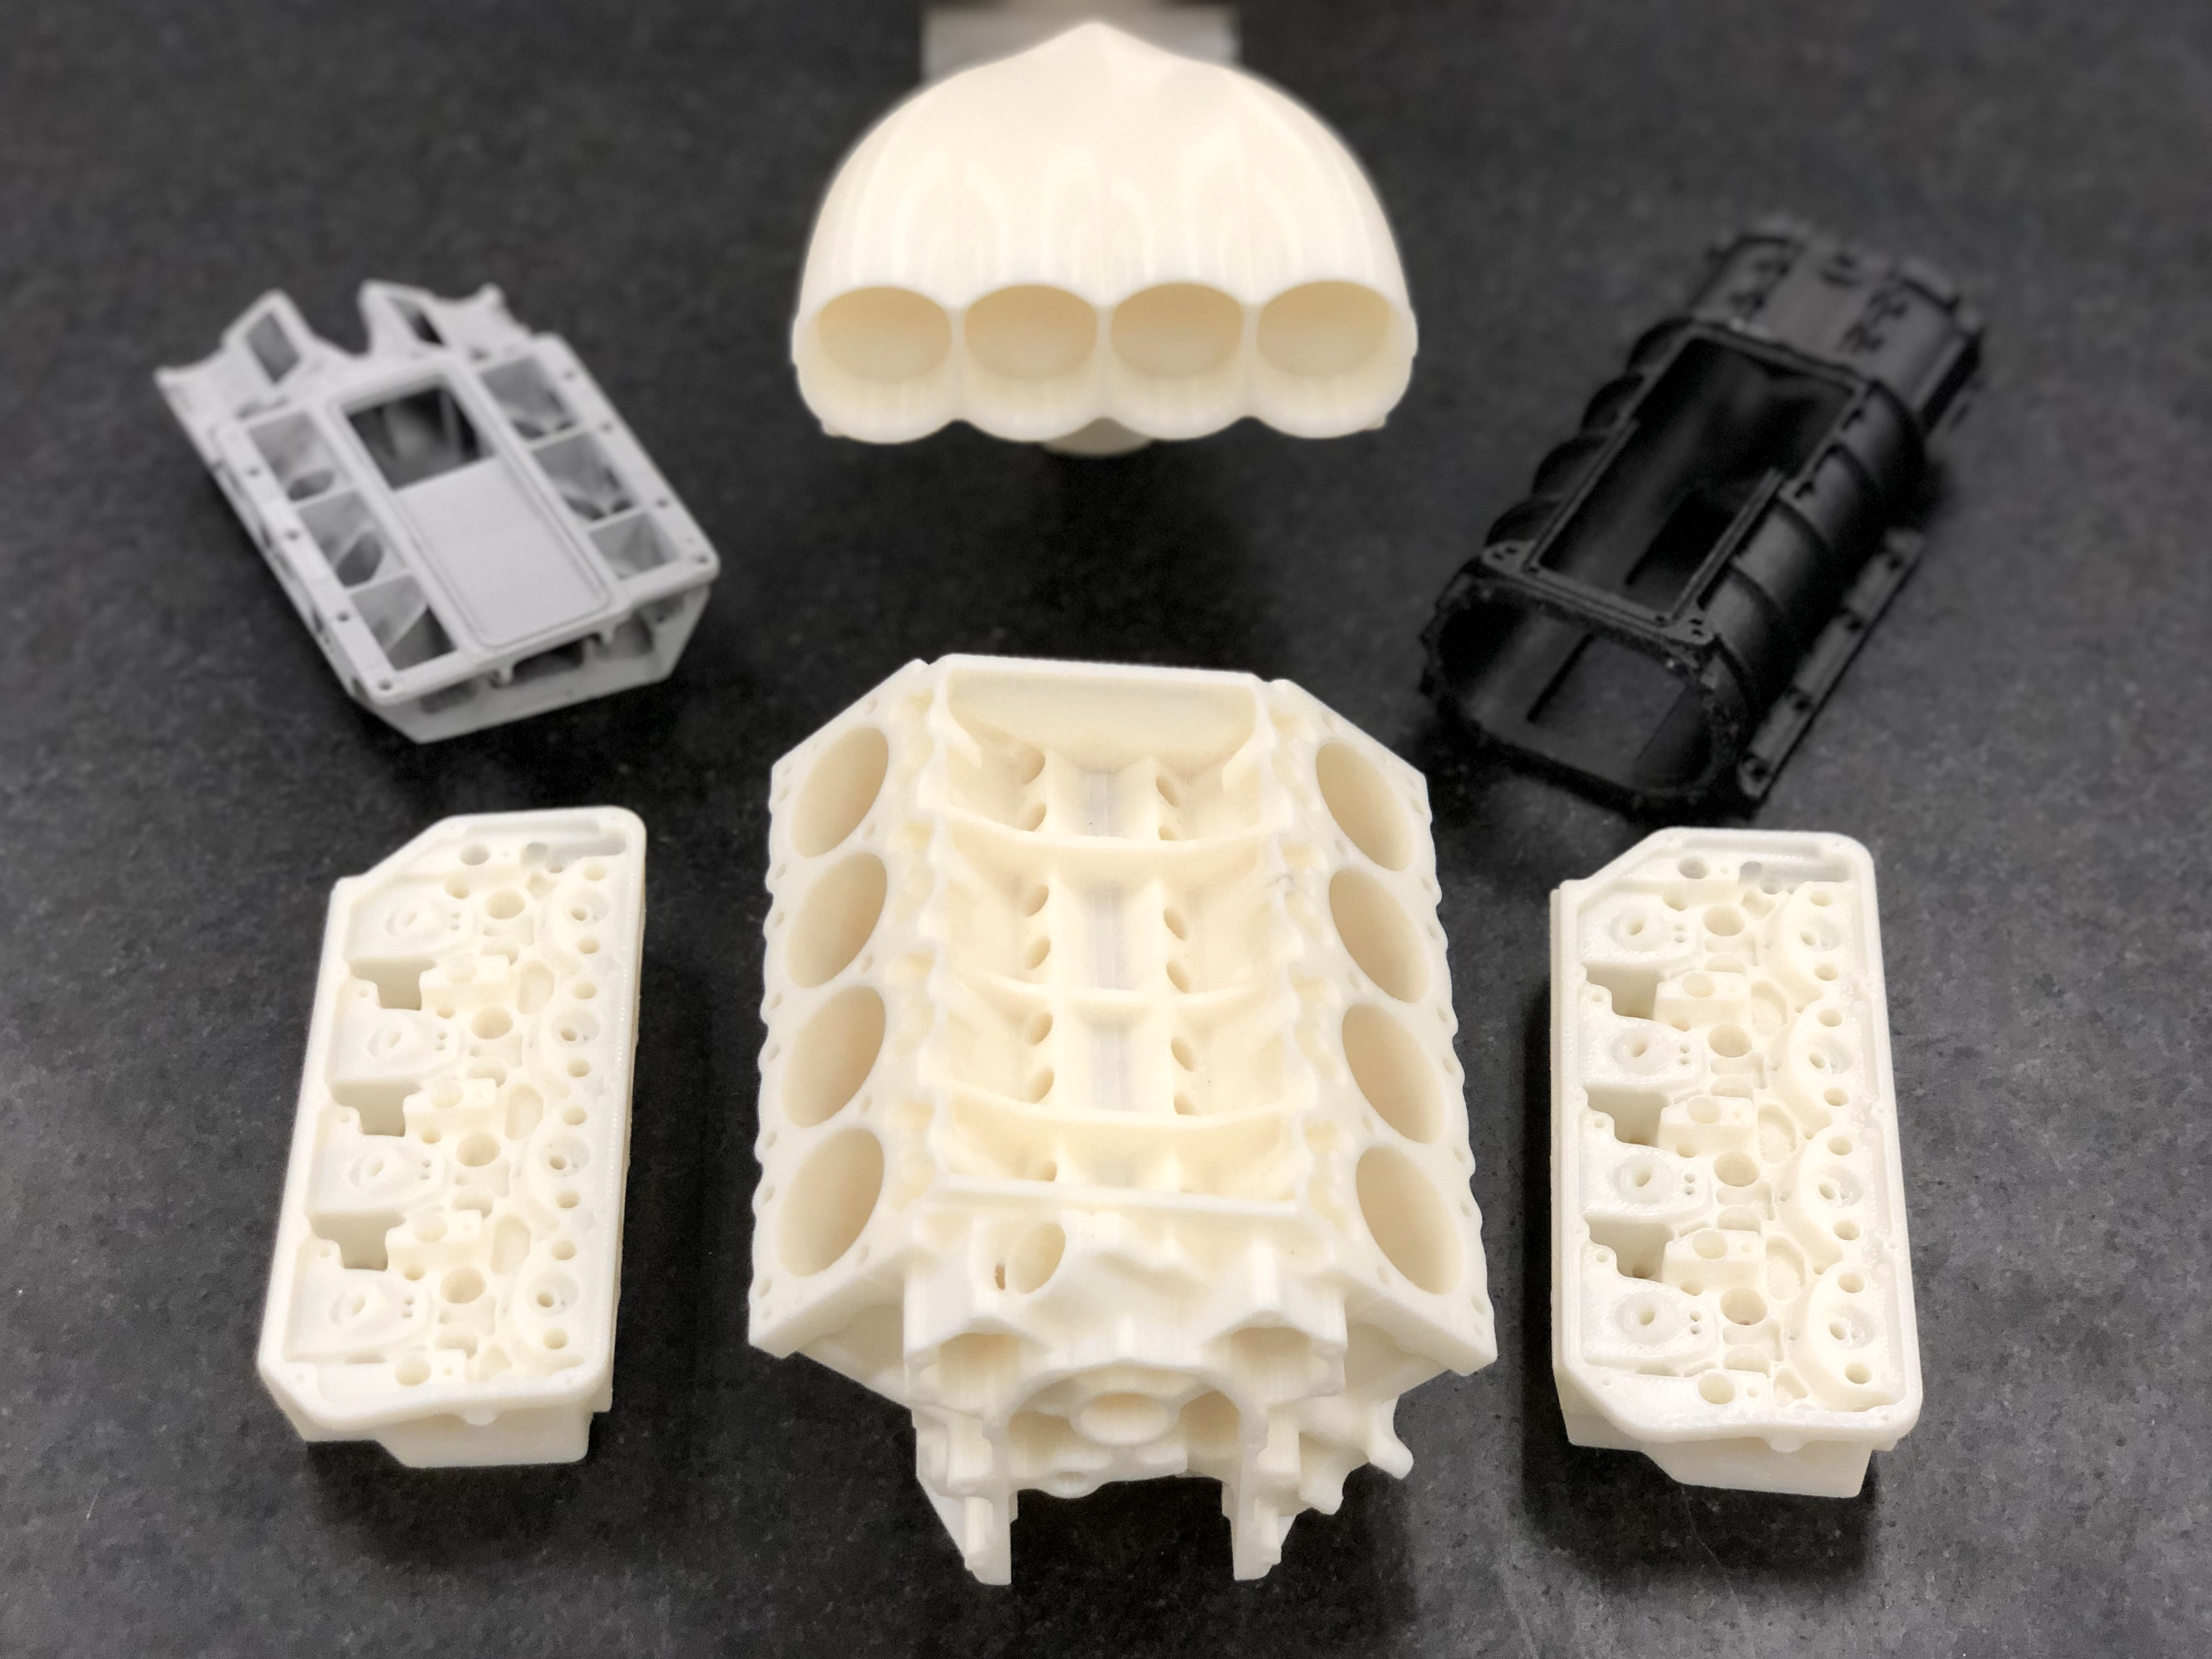 Accelerating prototype development and produce proof-of-concept, finished ultralight usable components with Stratasys Fortus 450mc and F370 3D Printers.